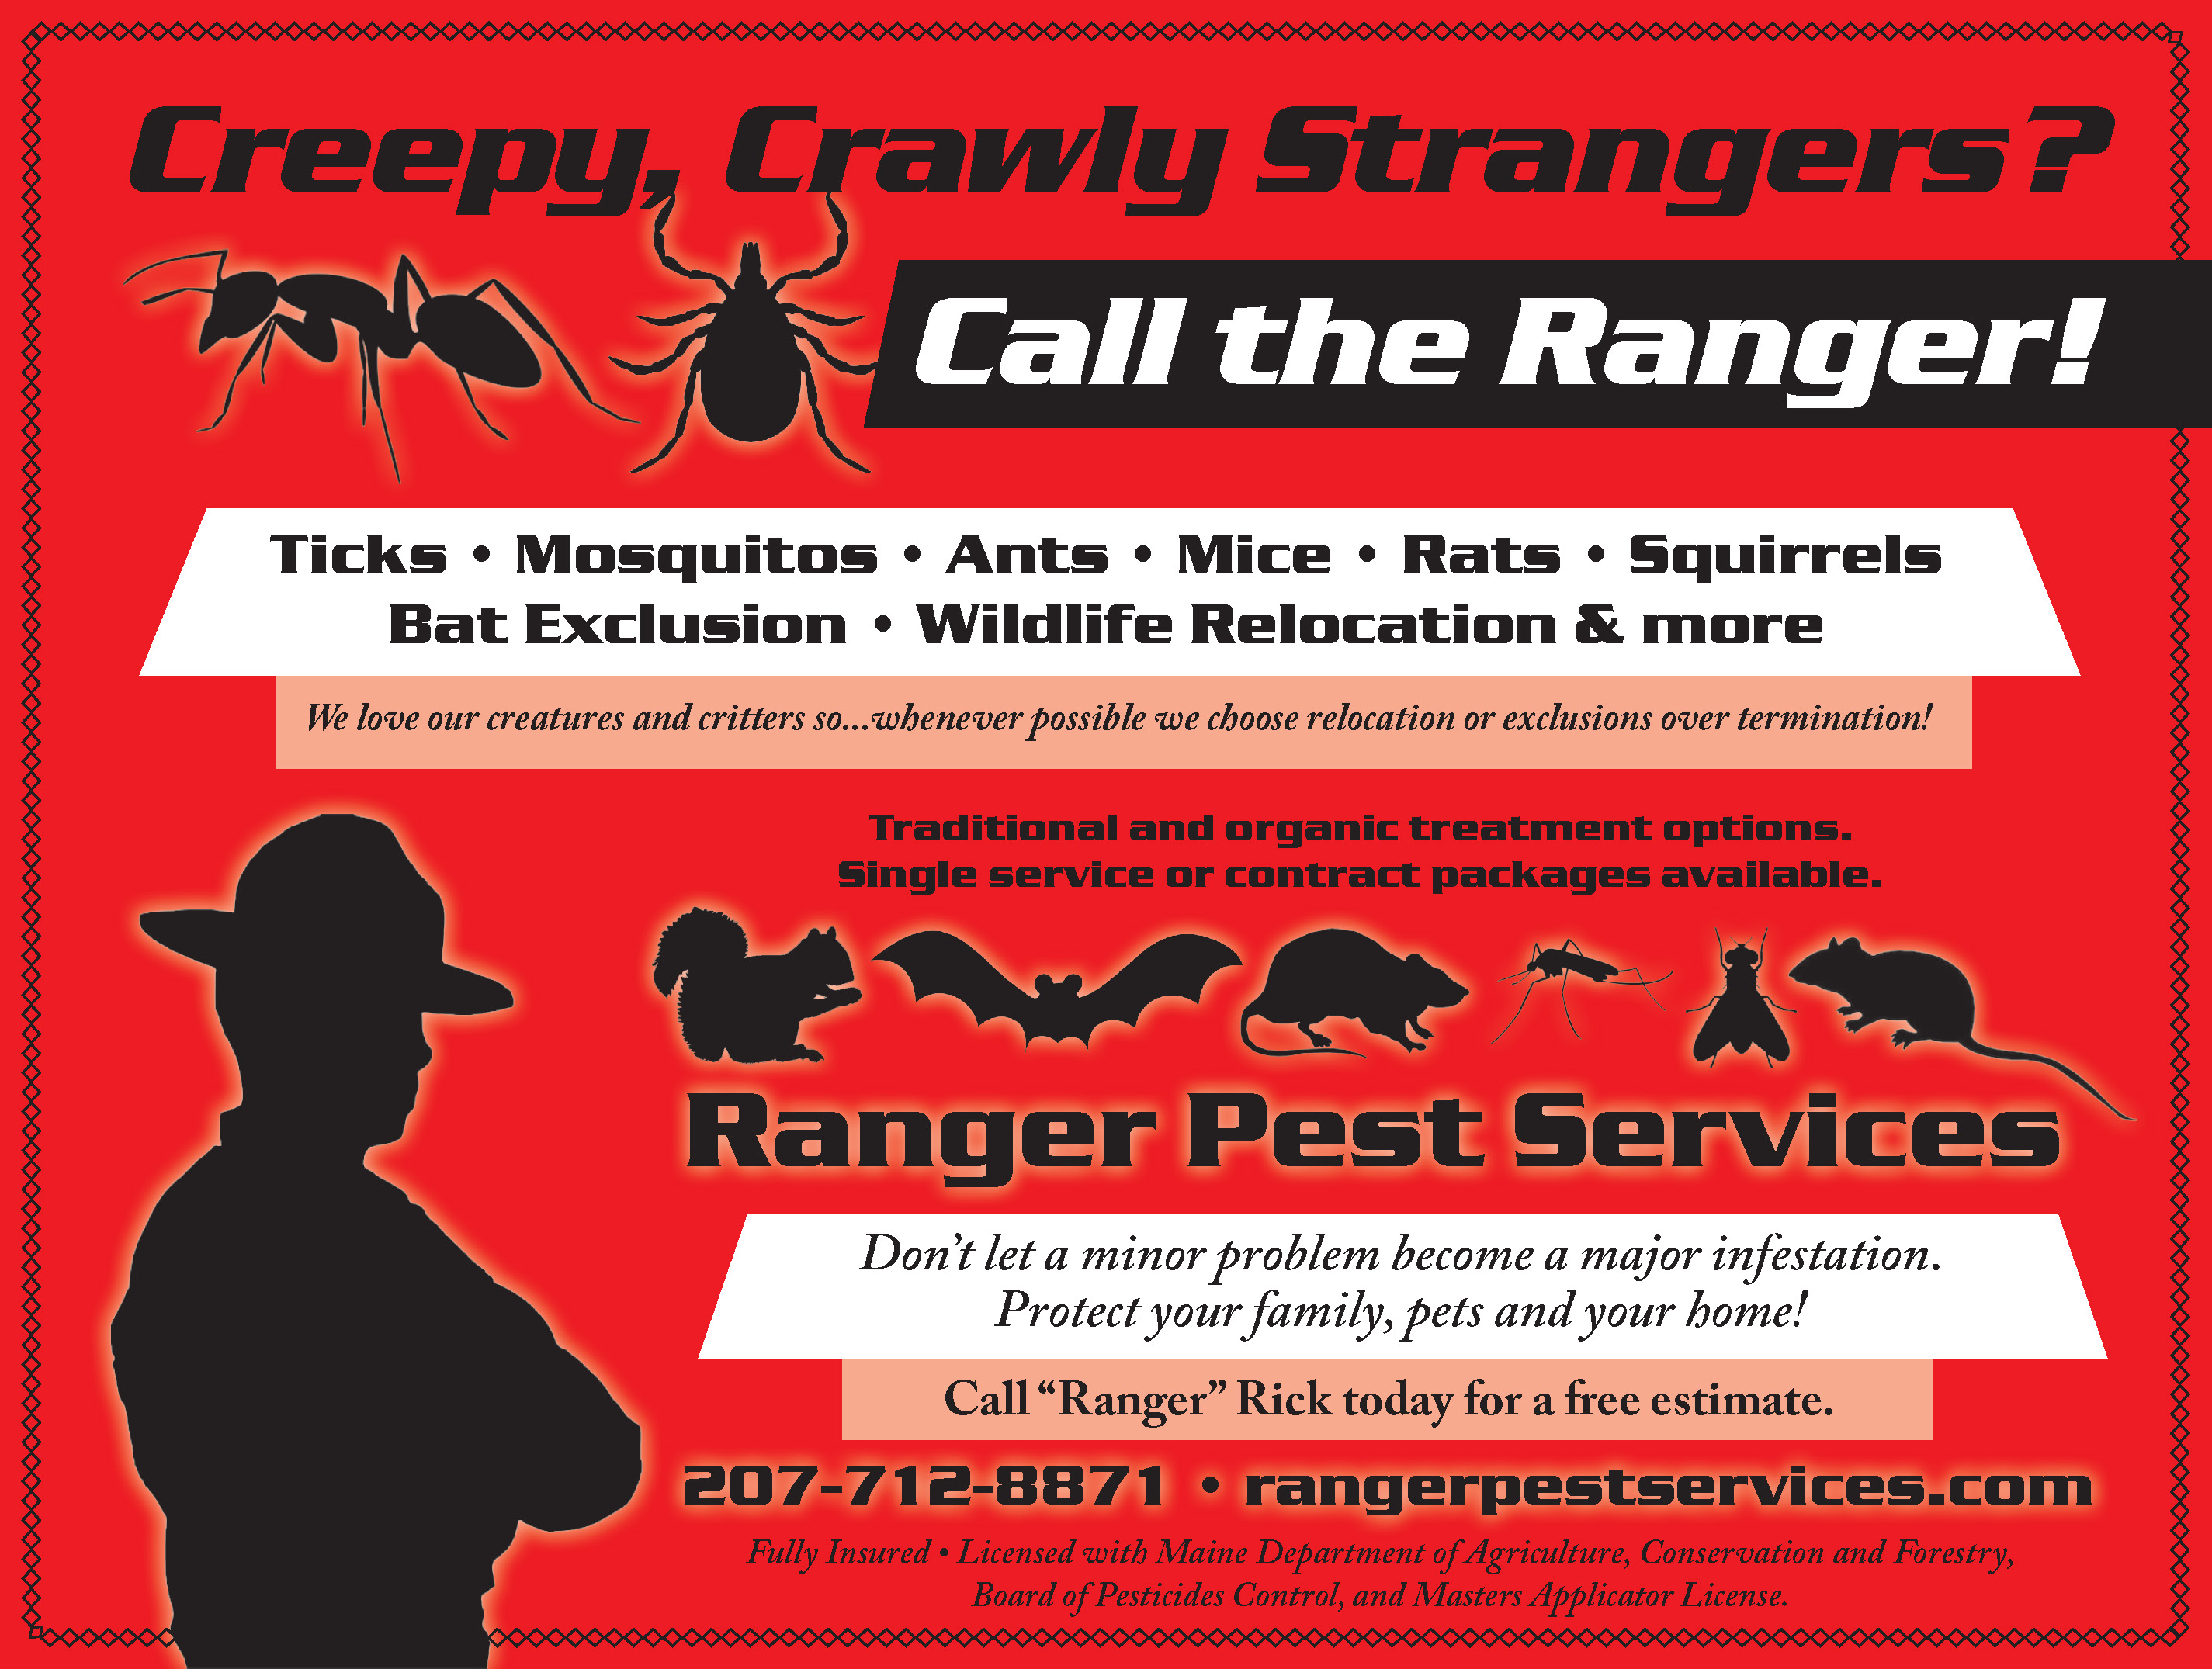 https://www.rangerpestservices.com/